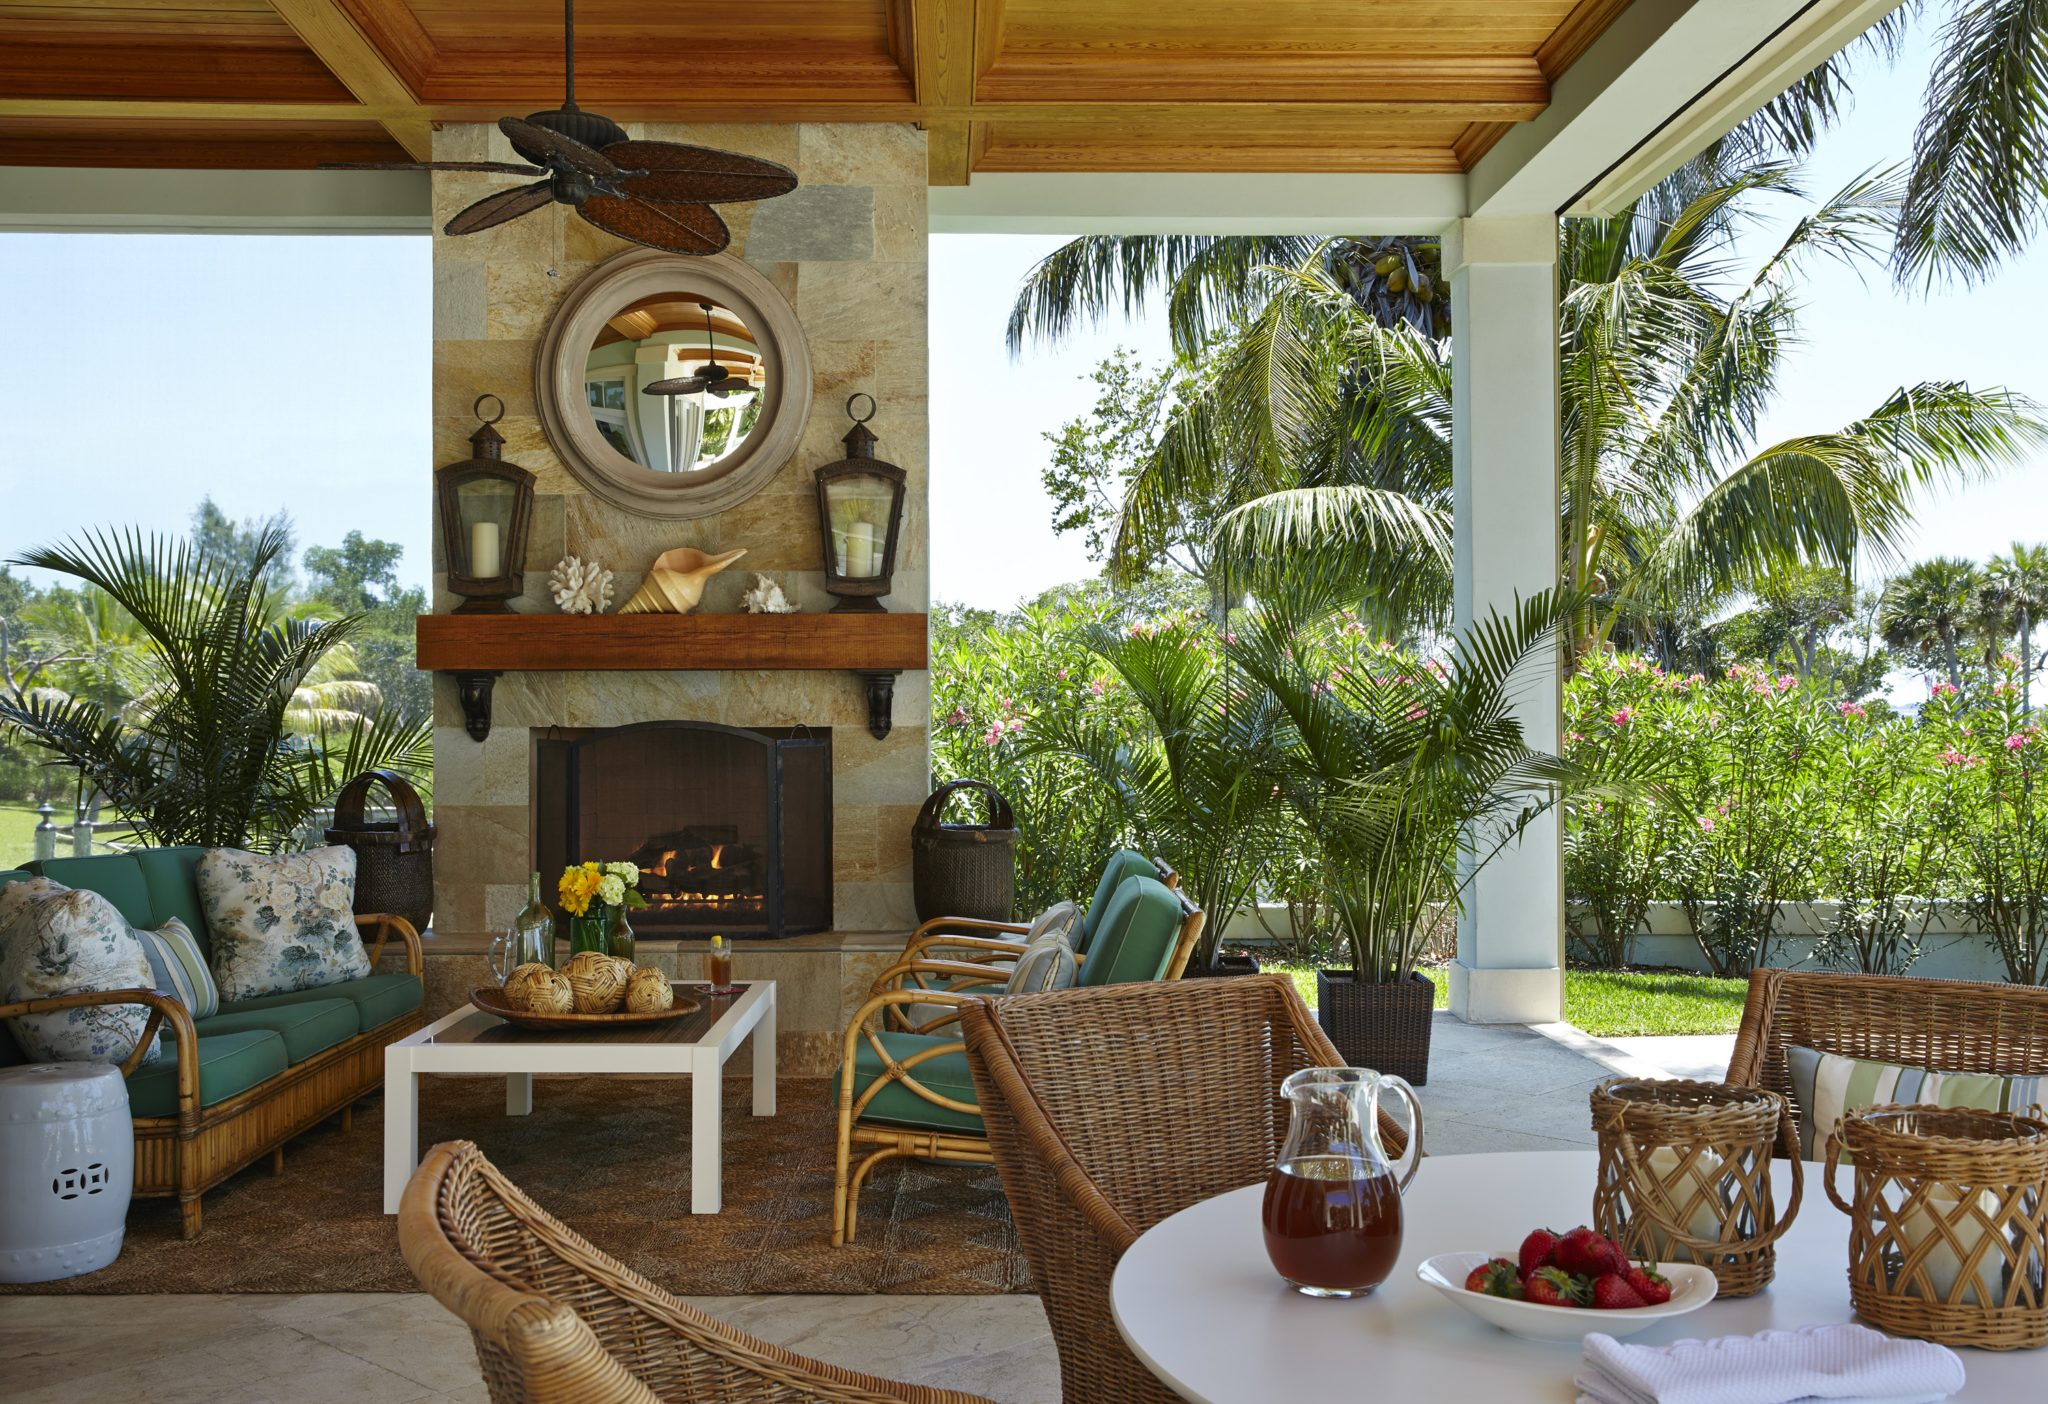 Florida Residence - Outdoor Room by Gary McBournie Inc.